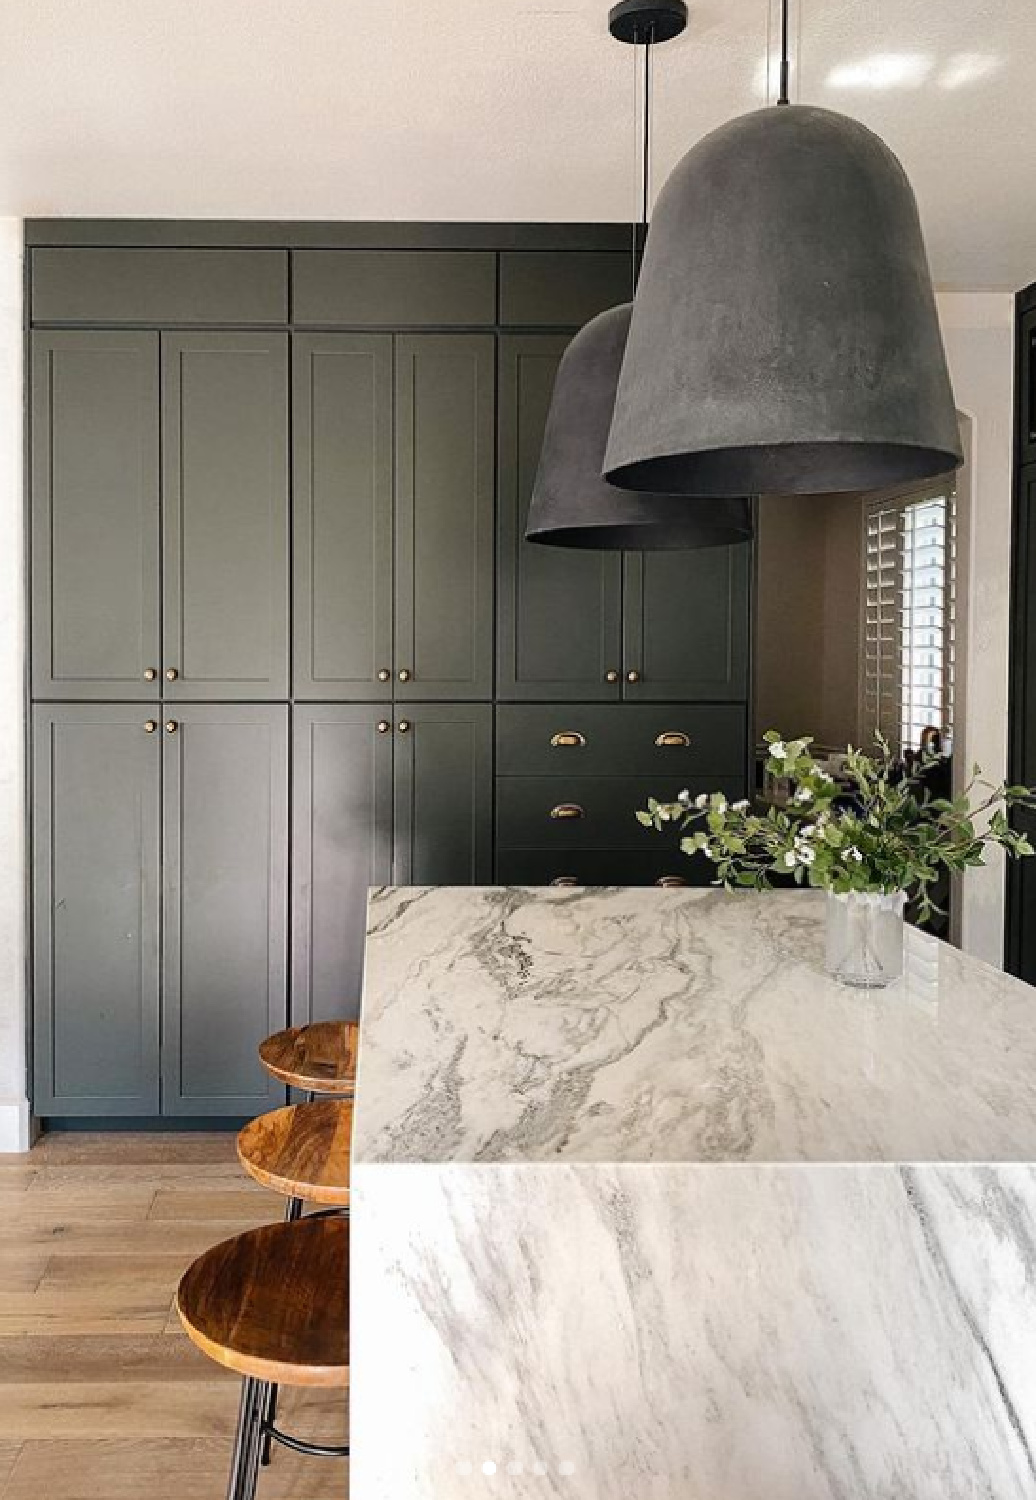 Customized cabinet fronts from NIEU (Angela Rose Slim Shaker Detail in Dream Dusk) in a luxurious kitchen with marble island and moody dark color. #refacedcabinets #customcabinetfronts #nieu